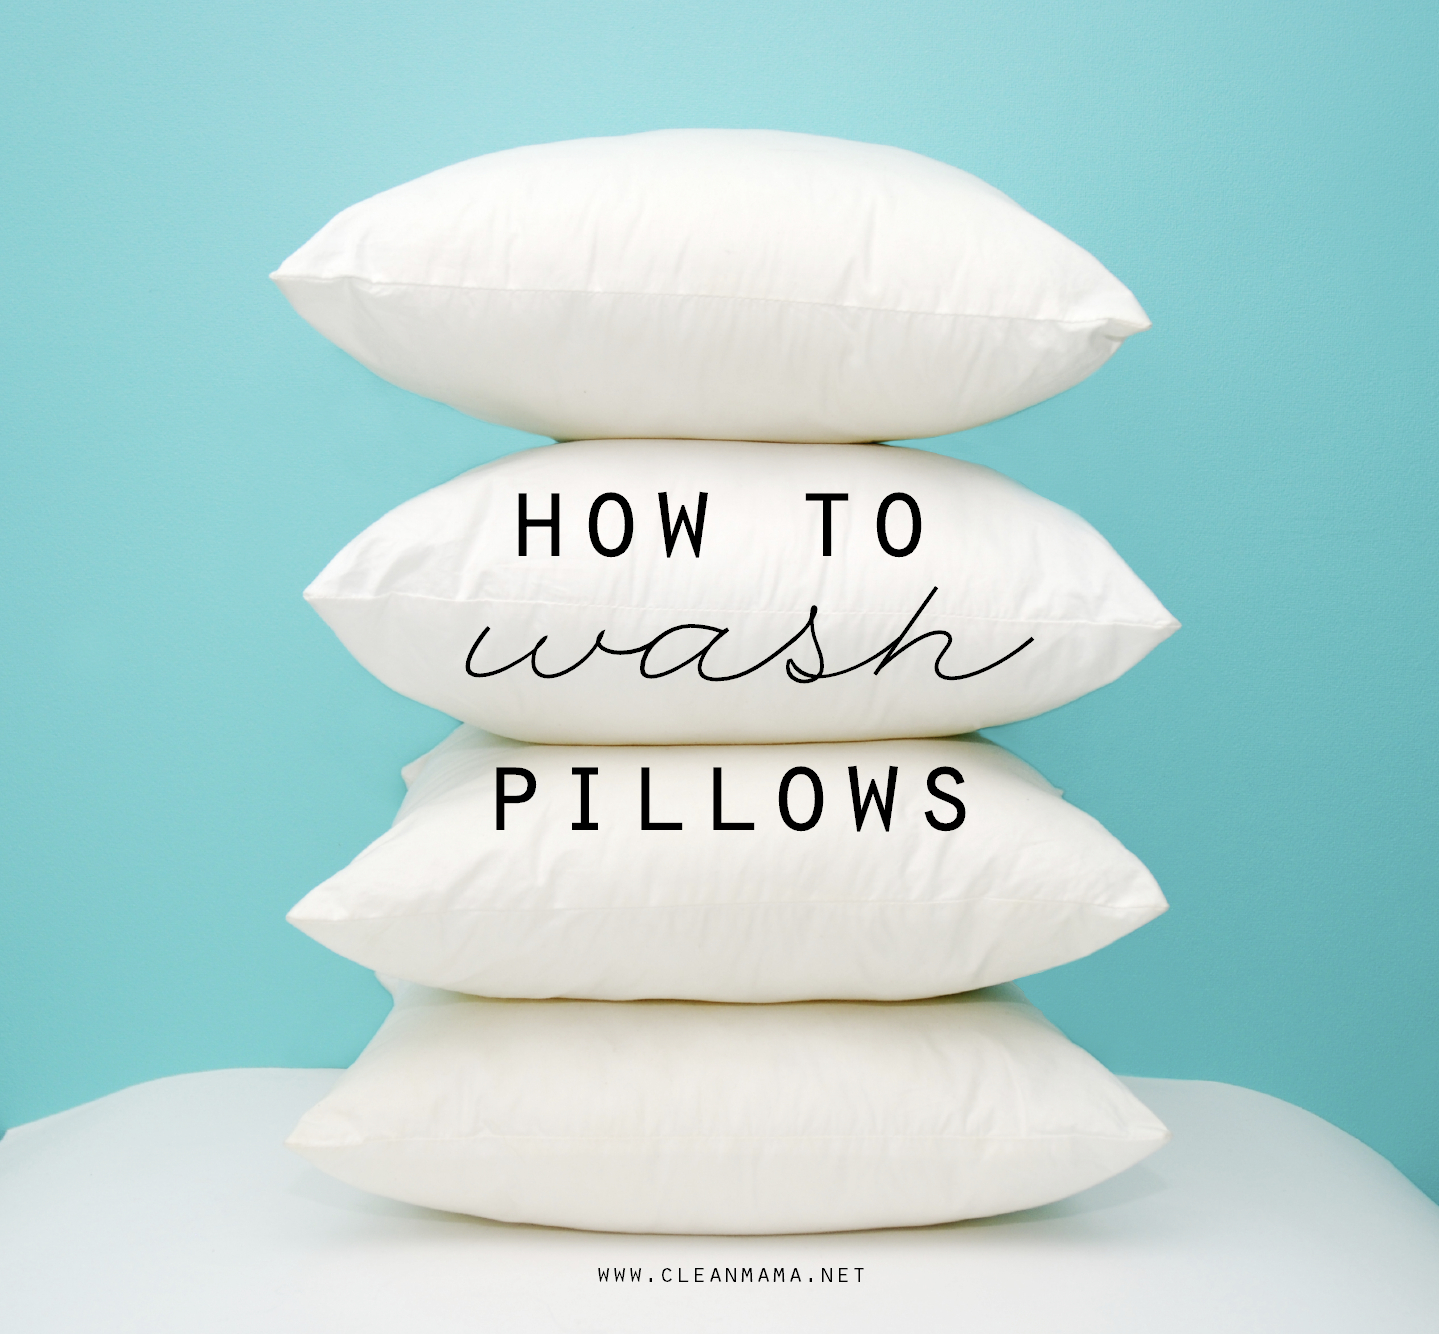 How to Wash Pillows | Wash pillows, Clean mama and You ve